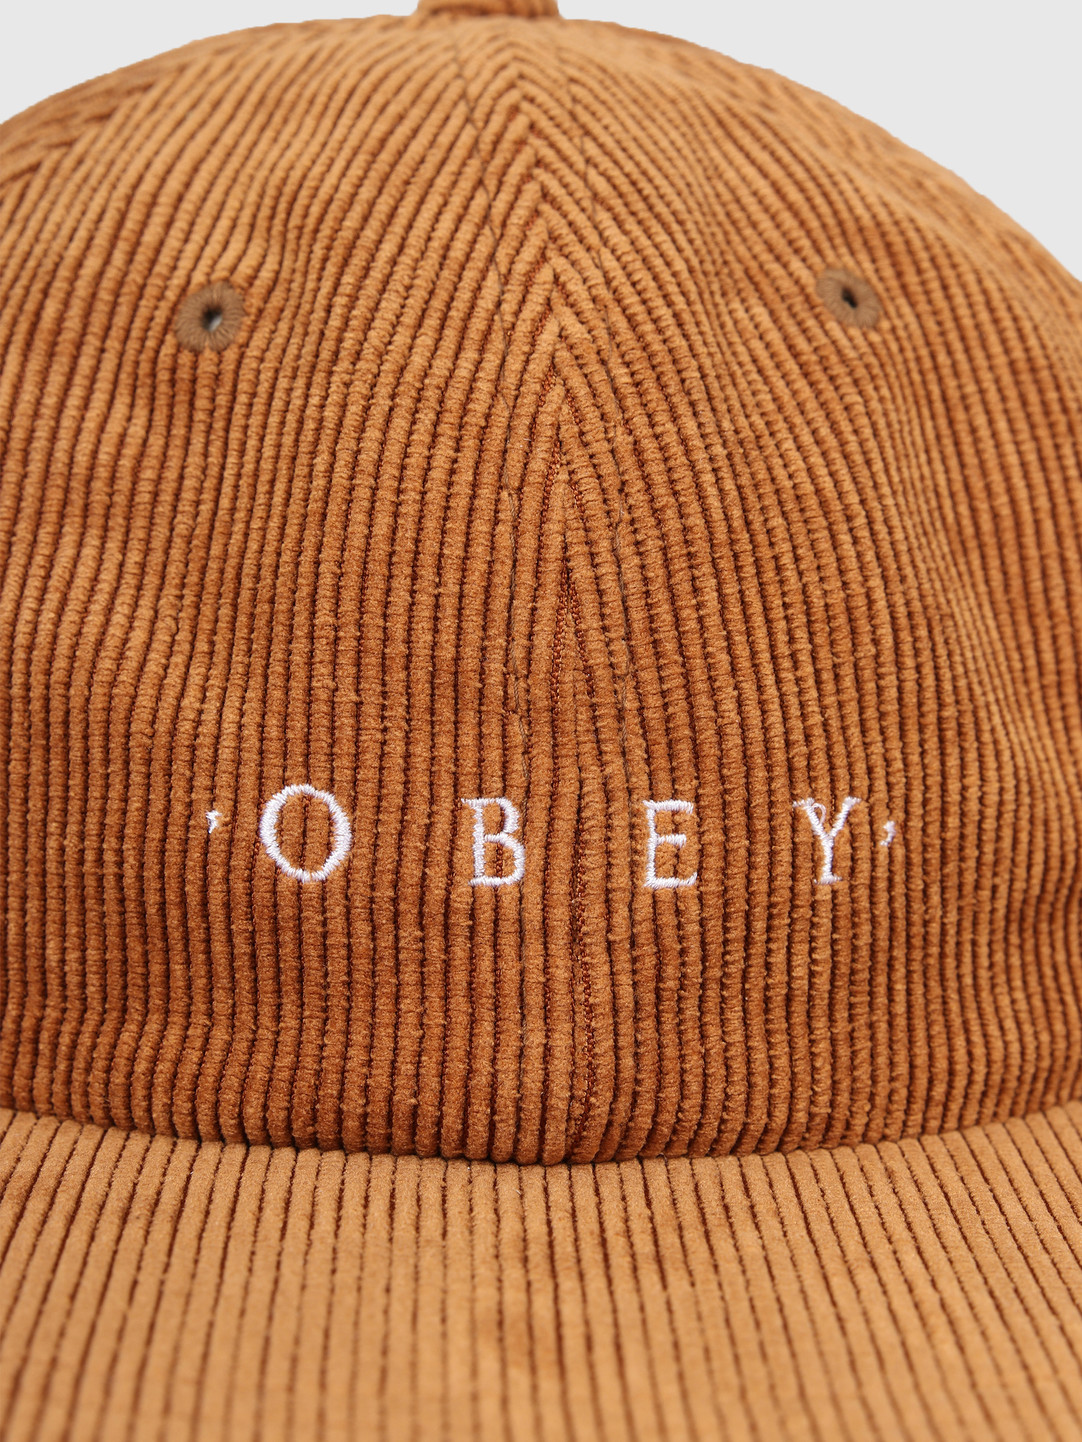 Obey Obey Approach 6 Panel Strapback Tapenade 100580206-TAP